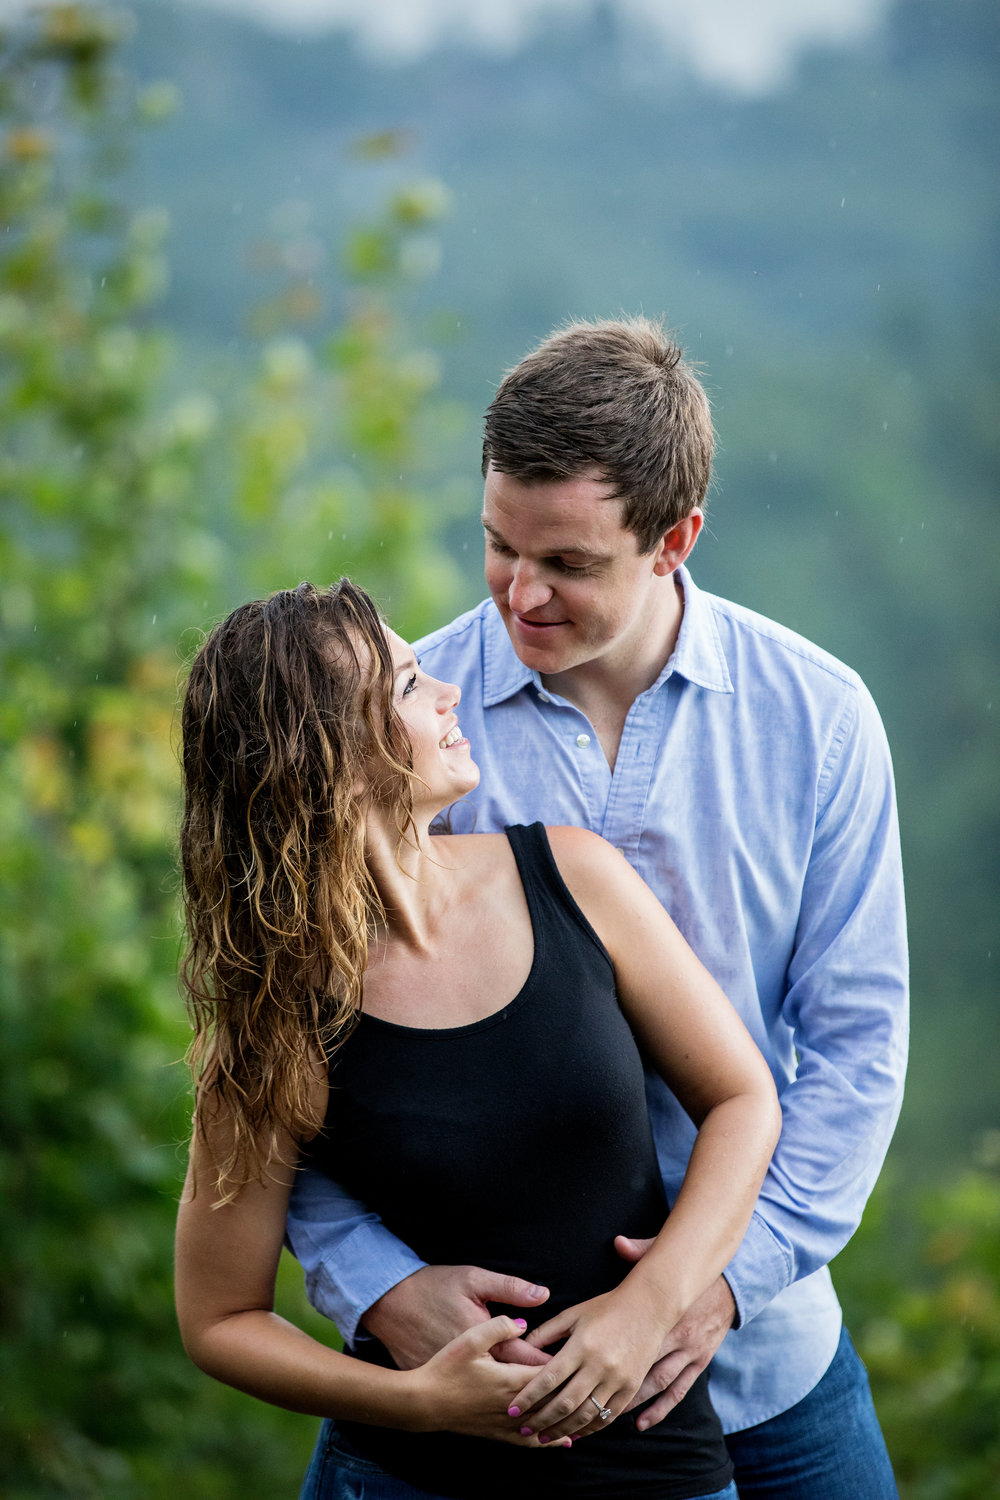 lake george engagement photography10.jpg